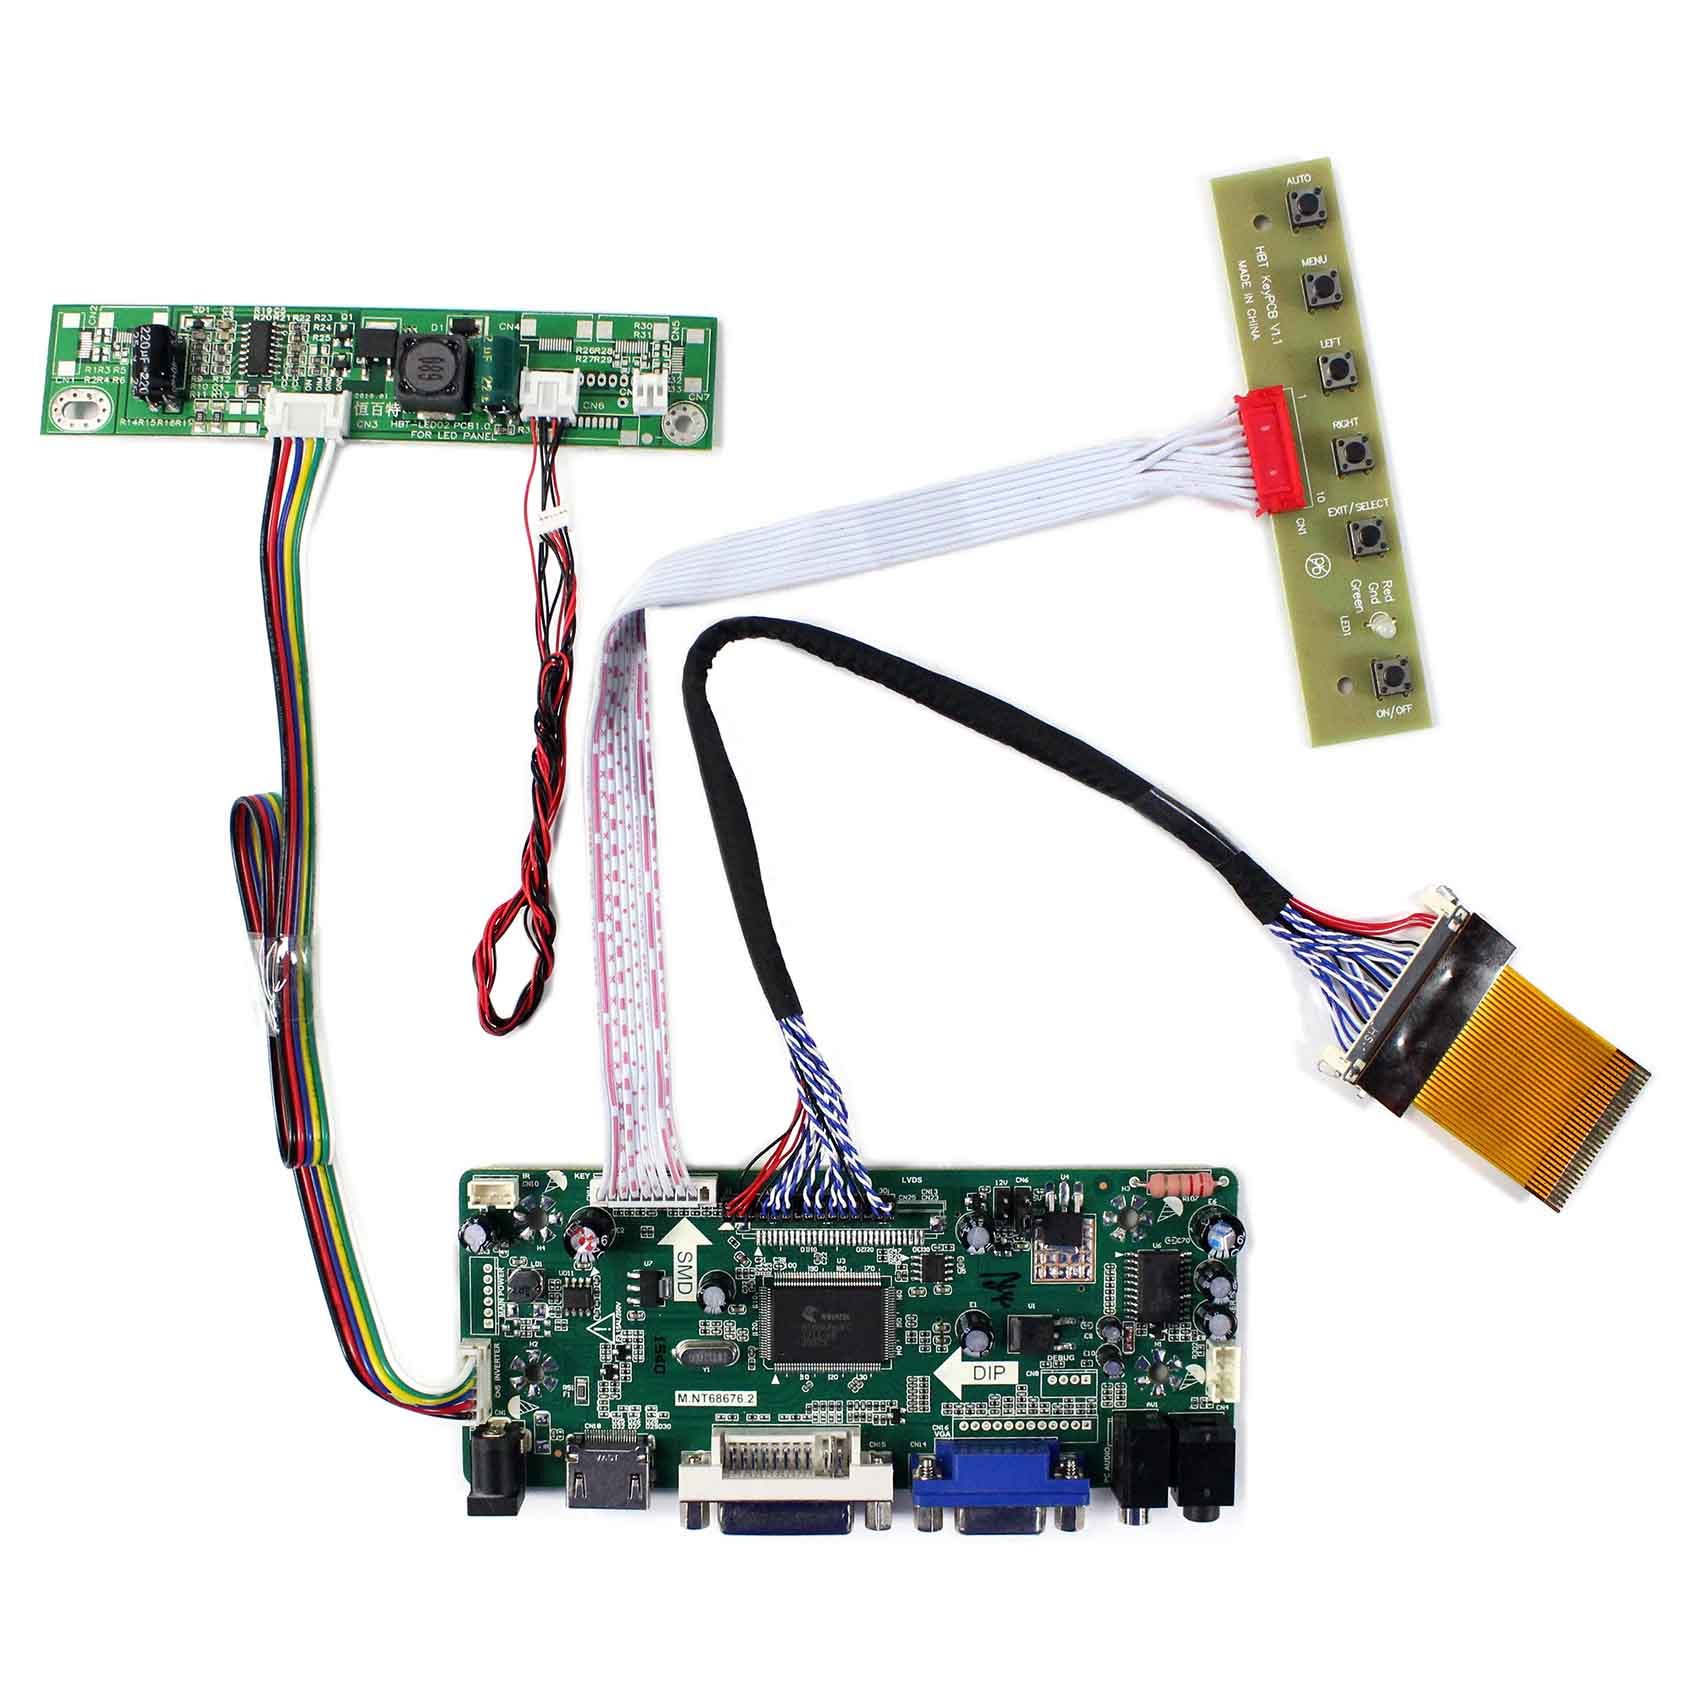 HDMI DVI VGA Audio Controller Board For 23inch LTM230HT05 LTM270HT03 1920X1080 LCD Panel